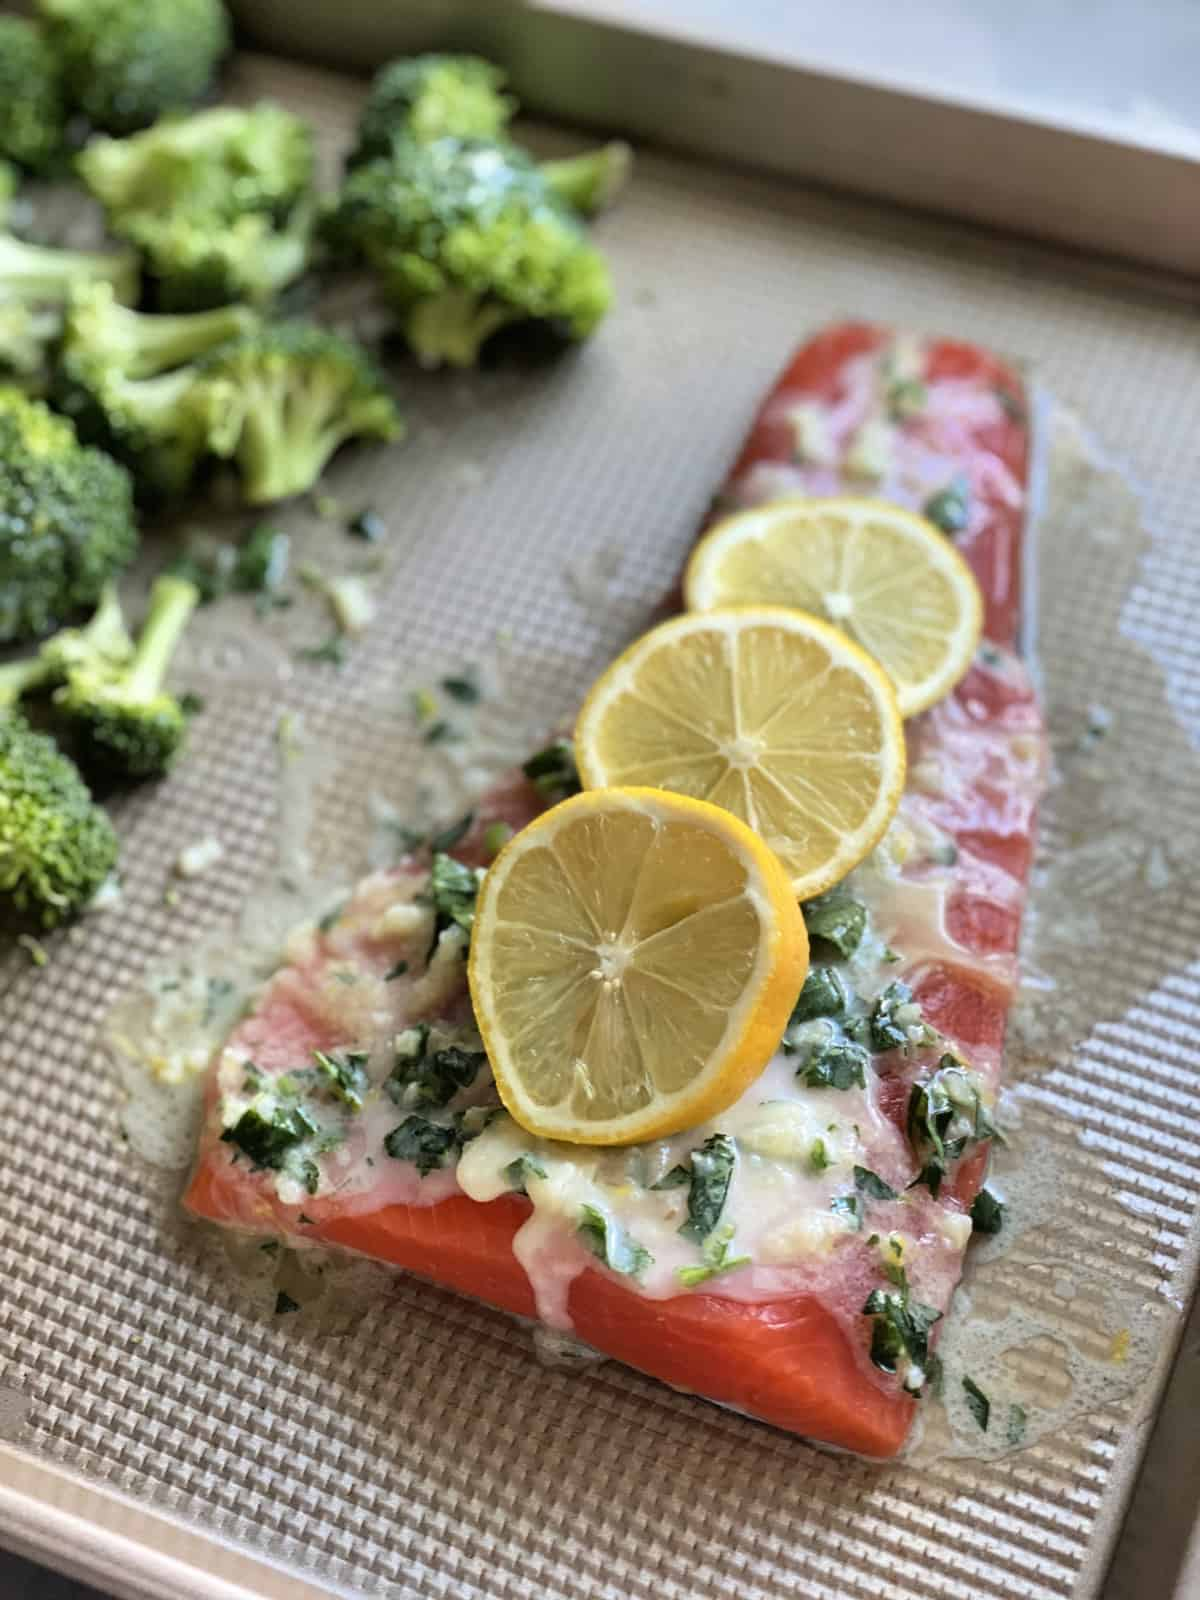 sheet pan with salmon topped with white herb sauce and lemon wheels prior to cooking.